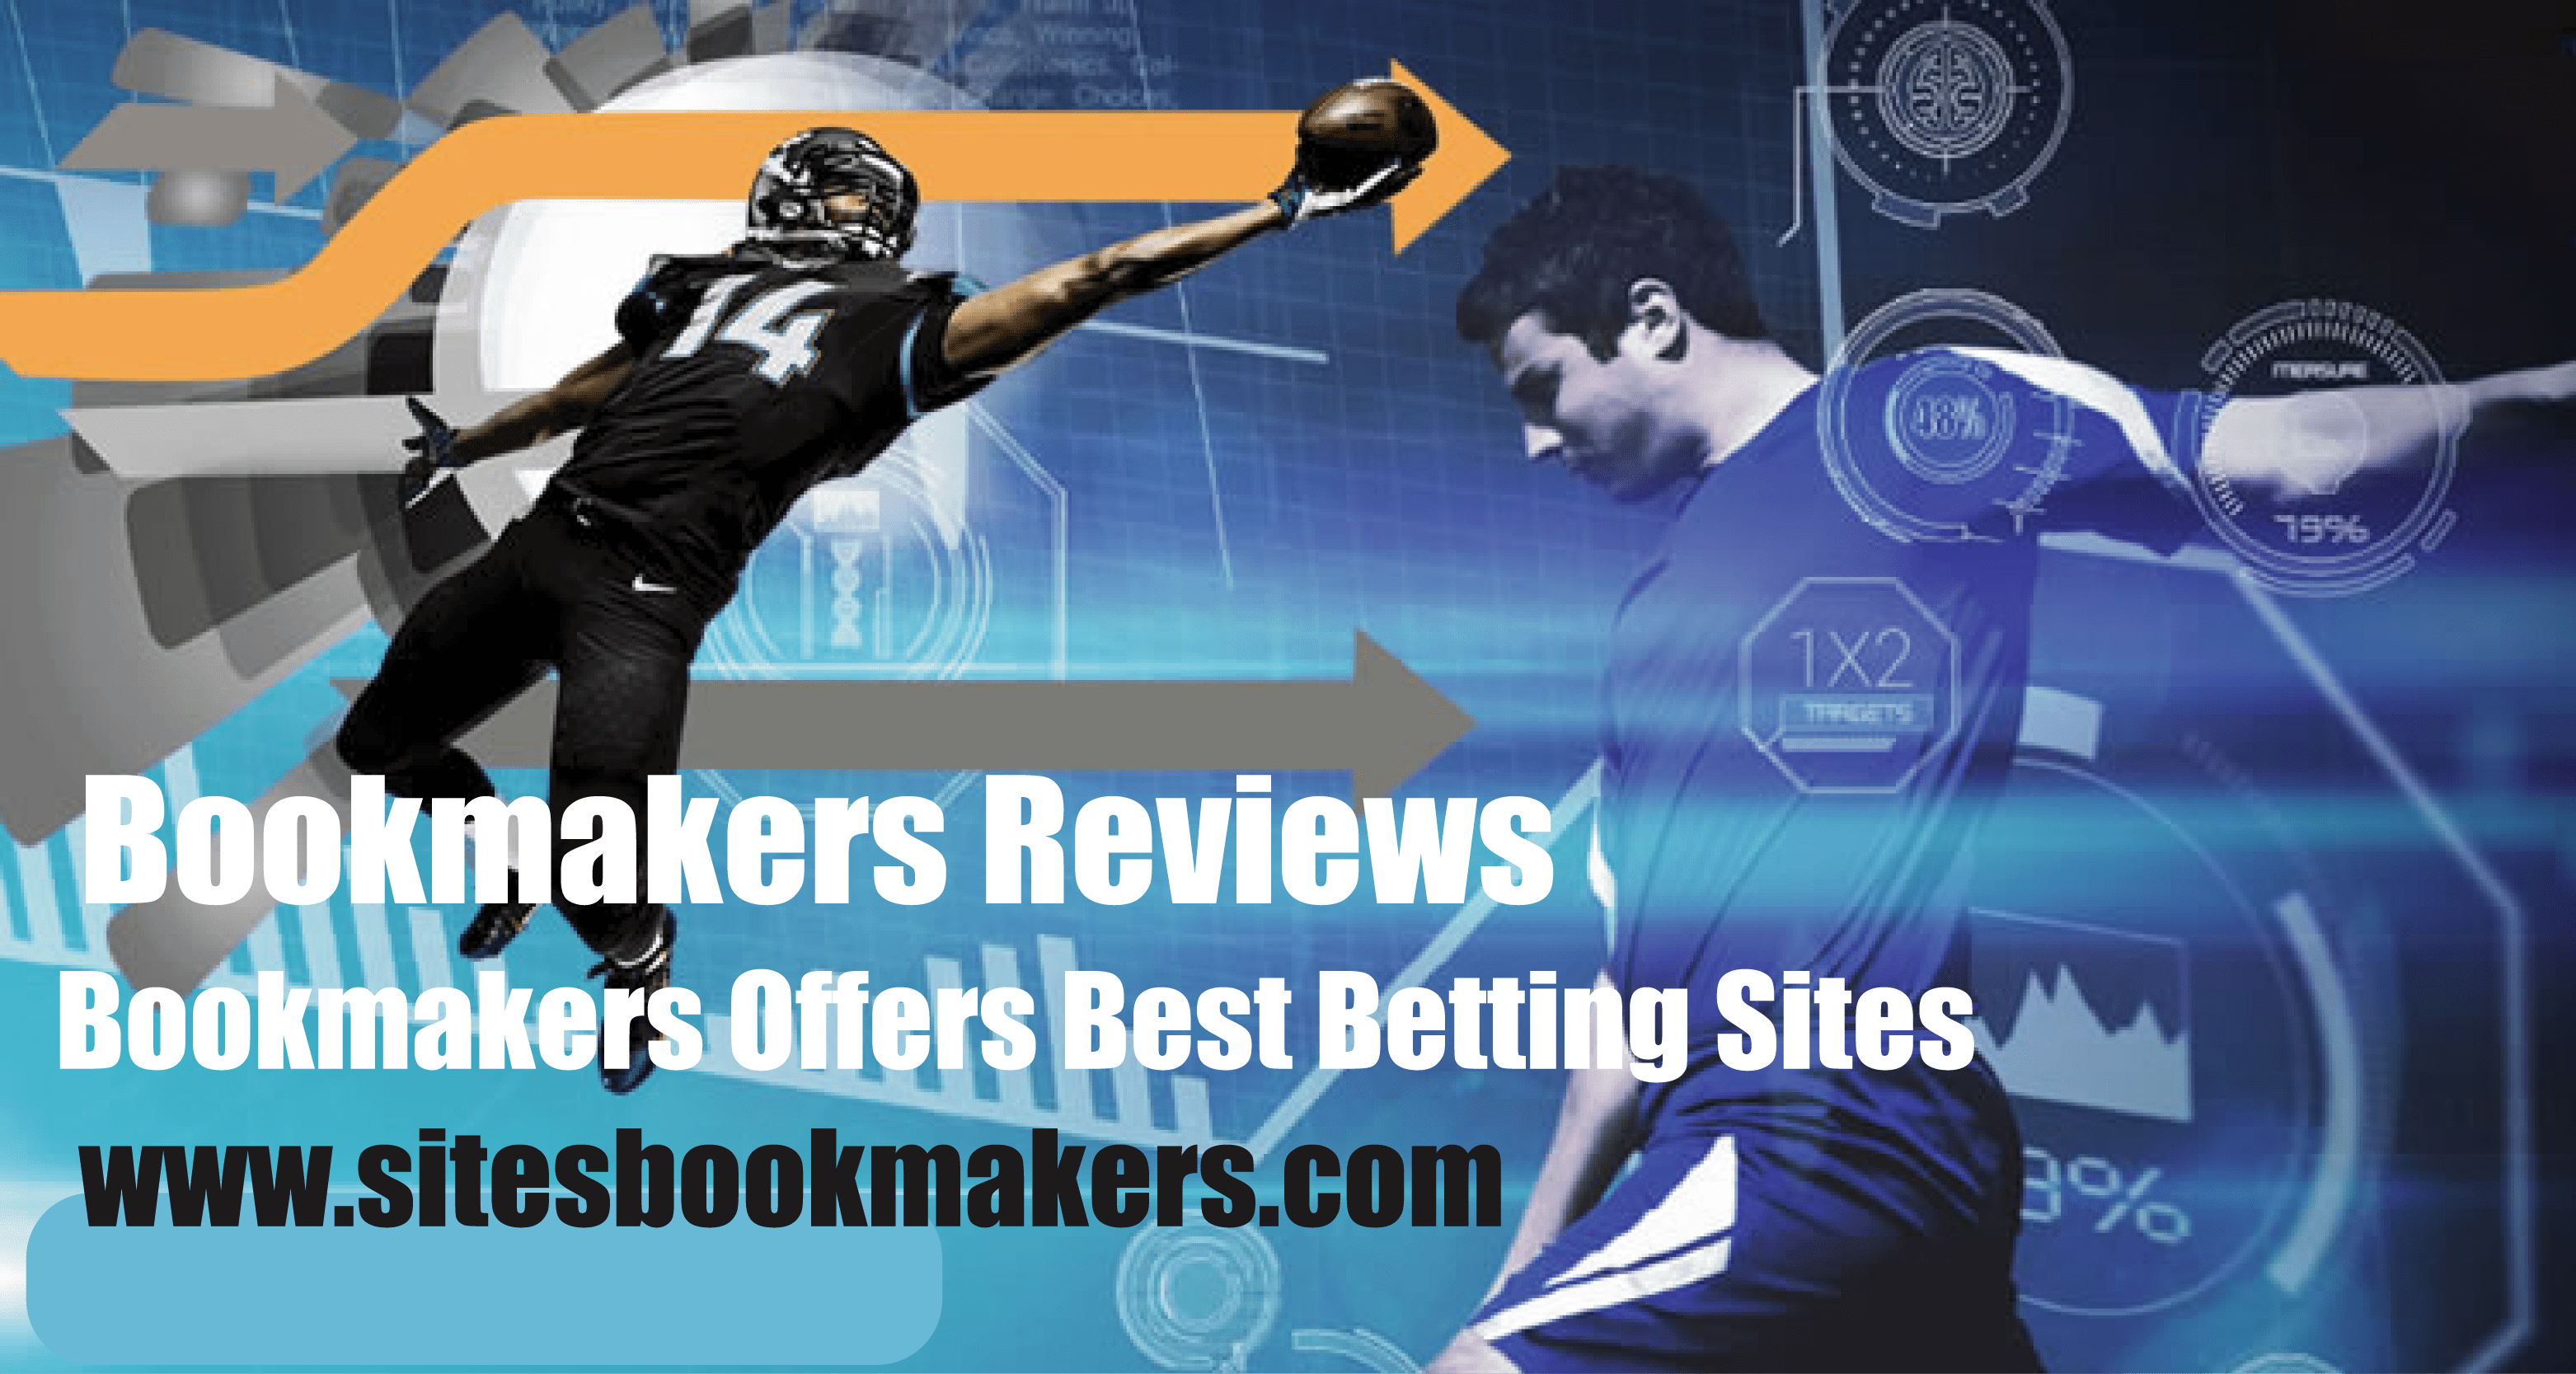 The Basics of Bookmakers Reviews